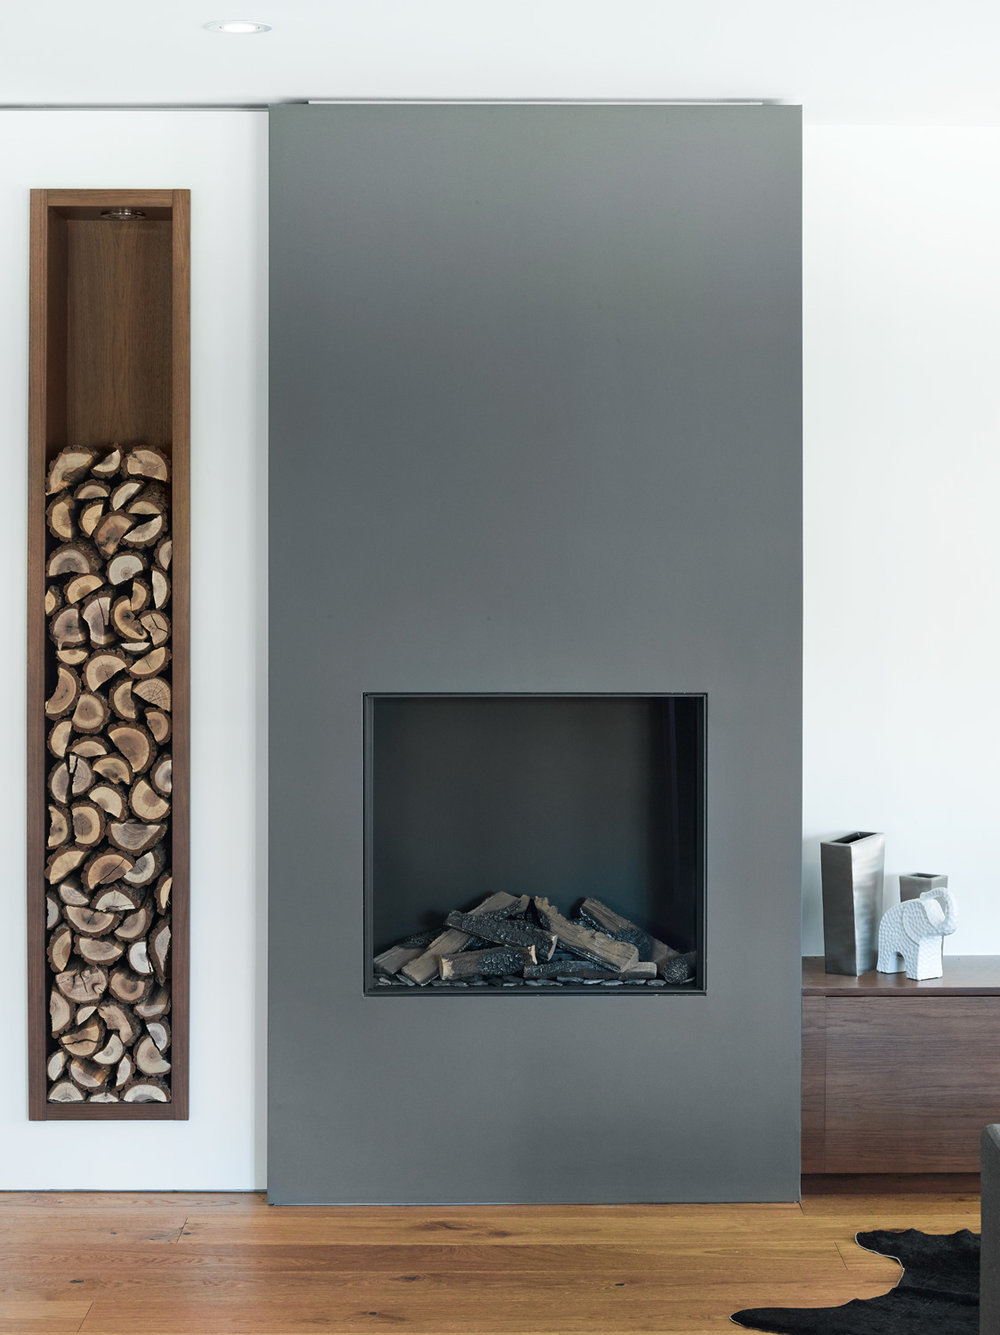 Fireplace Design by Martin de Sousa